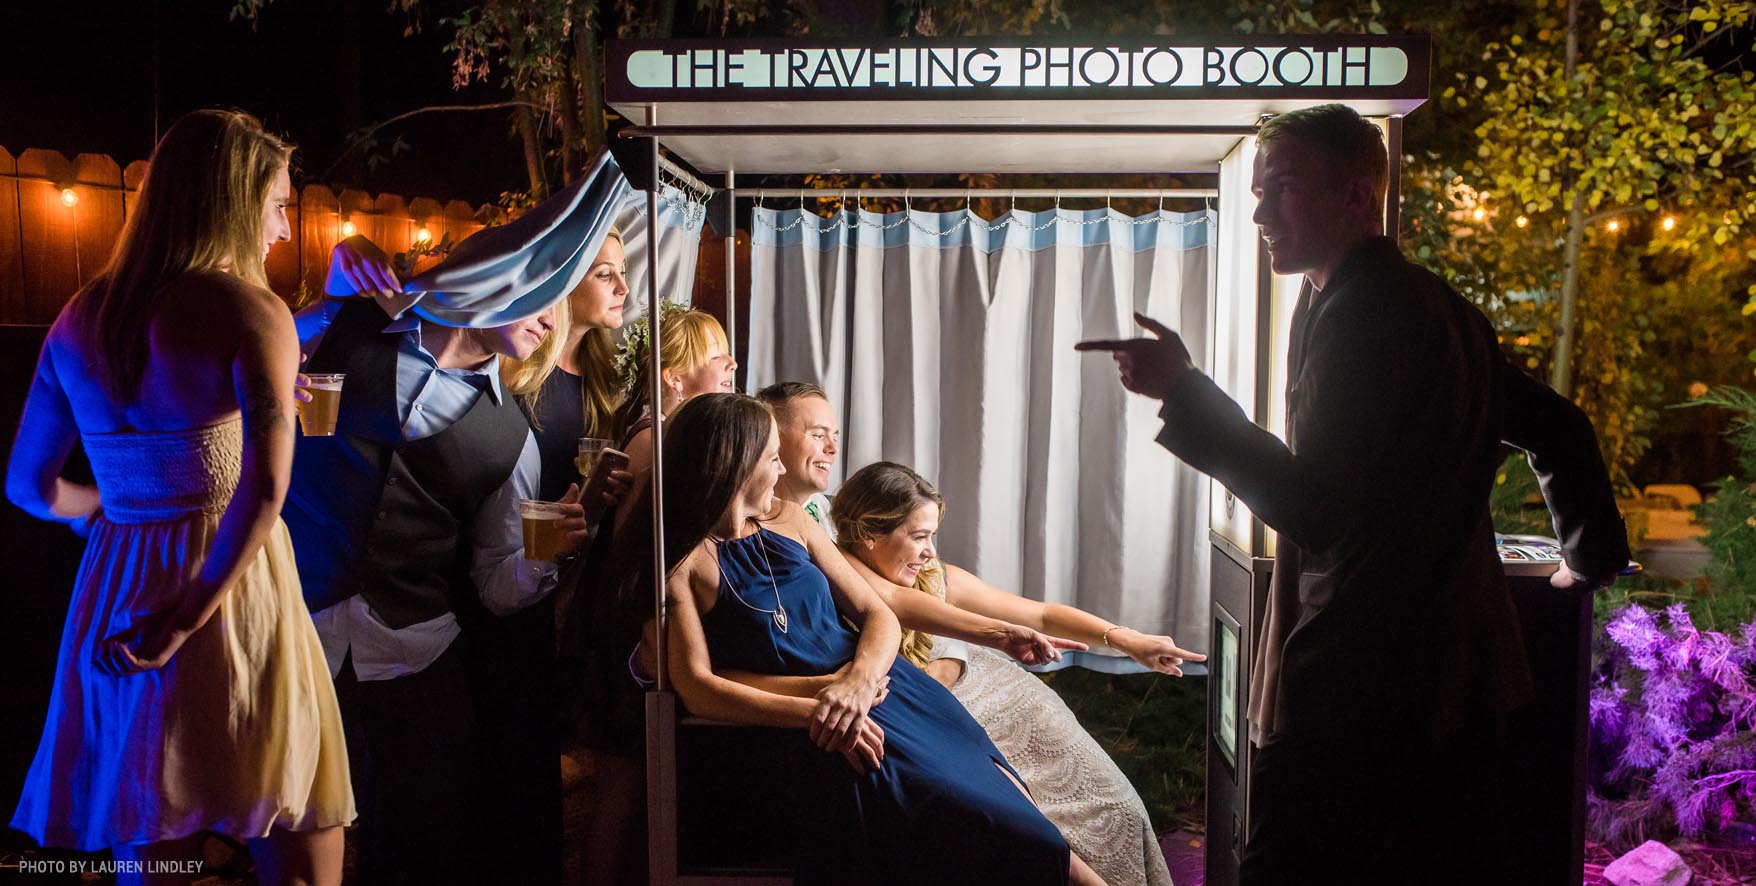 Photo Booth Wedding Rentals | Photo Booth Rentals | The